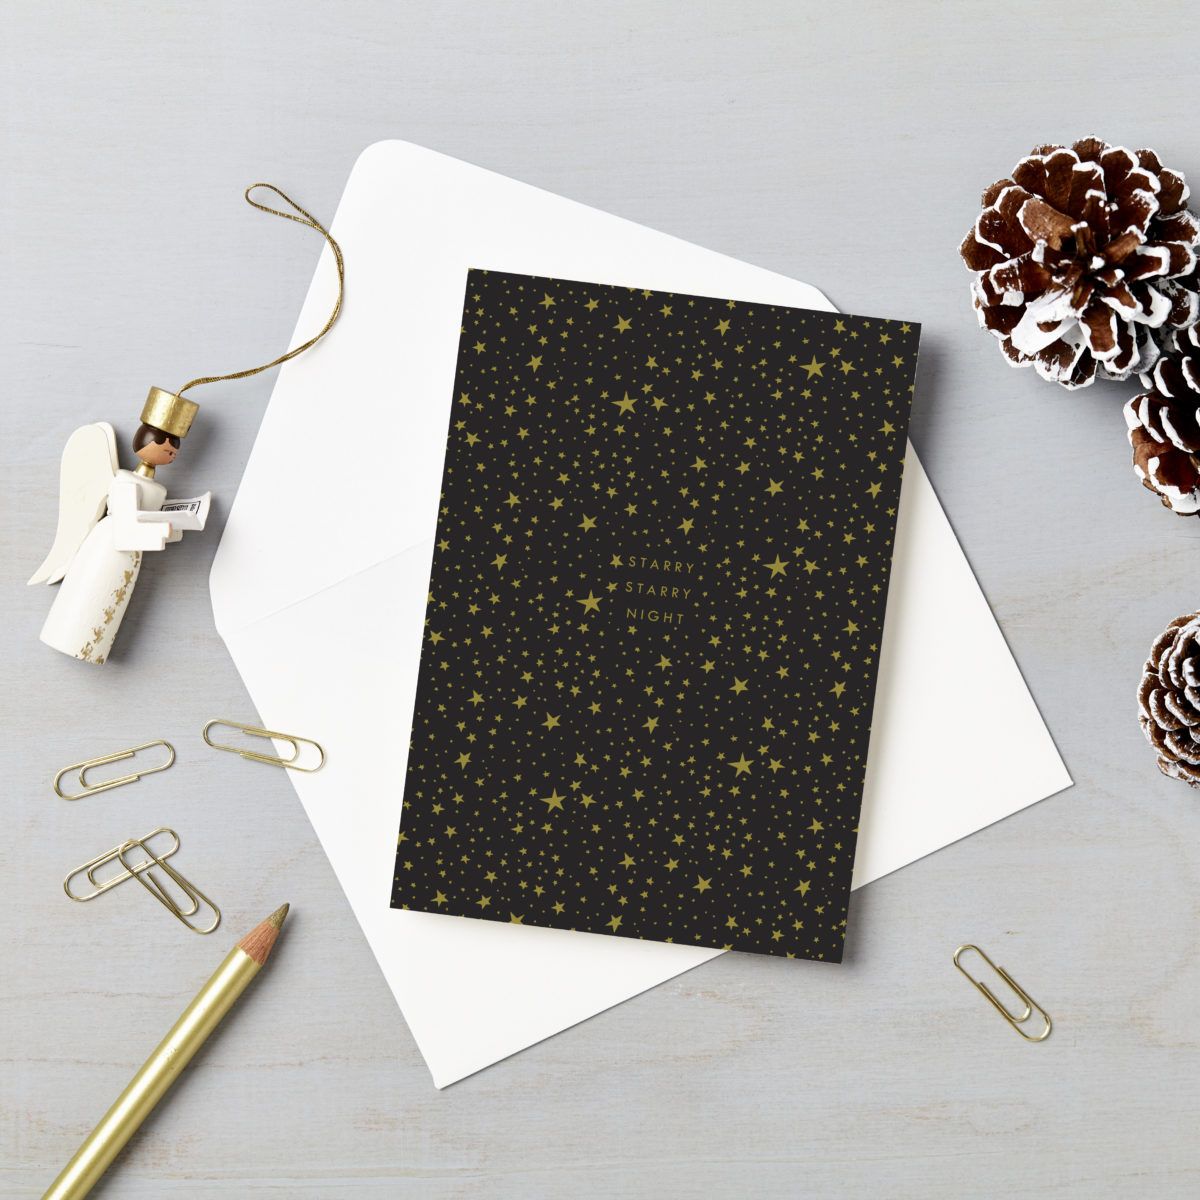 Starry Sky Charity Christmas Card 6 Pack starry starry night